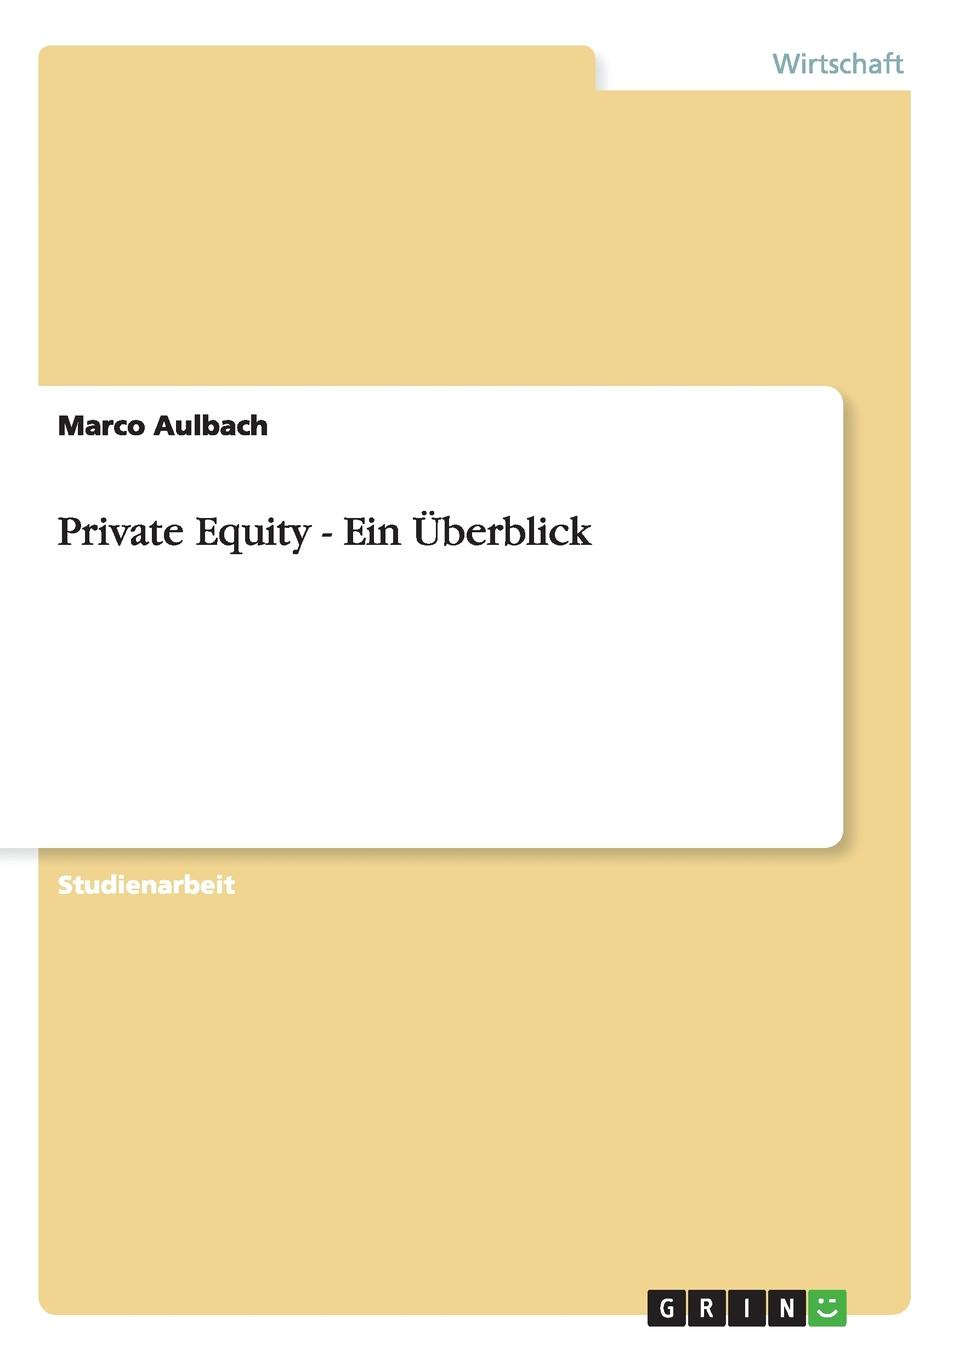 Marco Aulbach Private Equity - Ein Uberblick